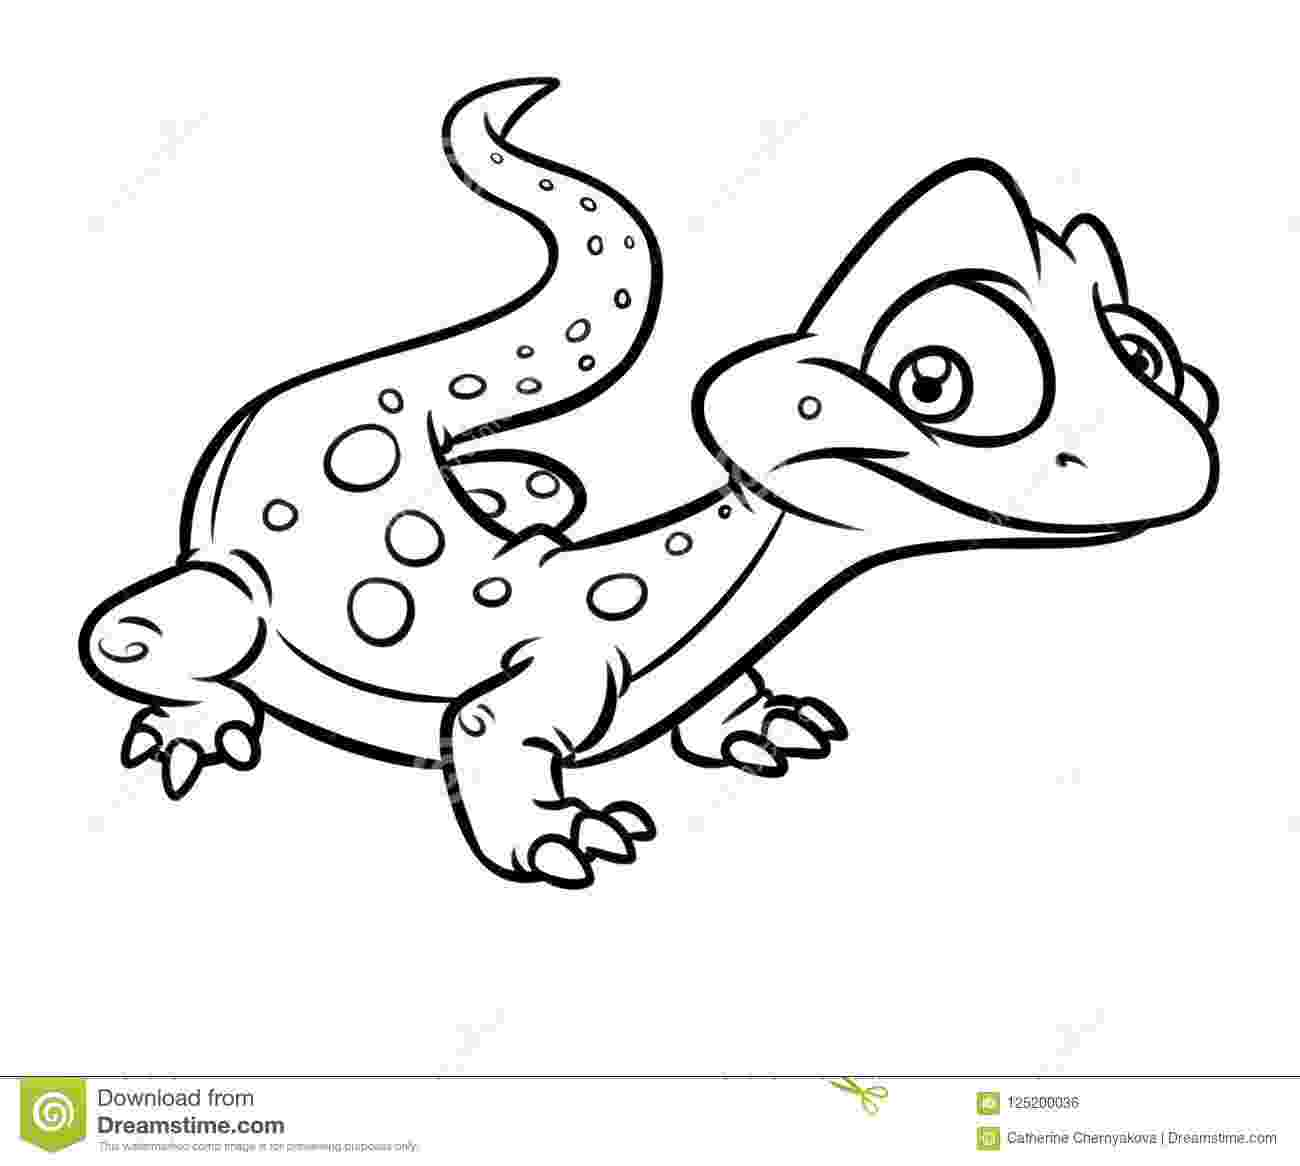 picture of a lizard to color carolina anole lizard coloring pages download print lizard color of picture a to